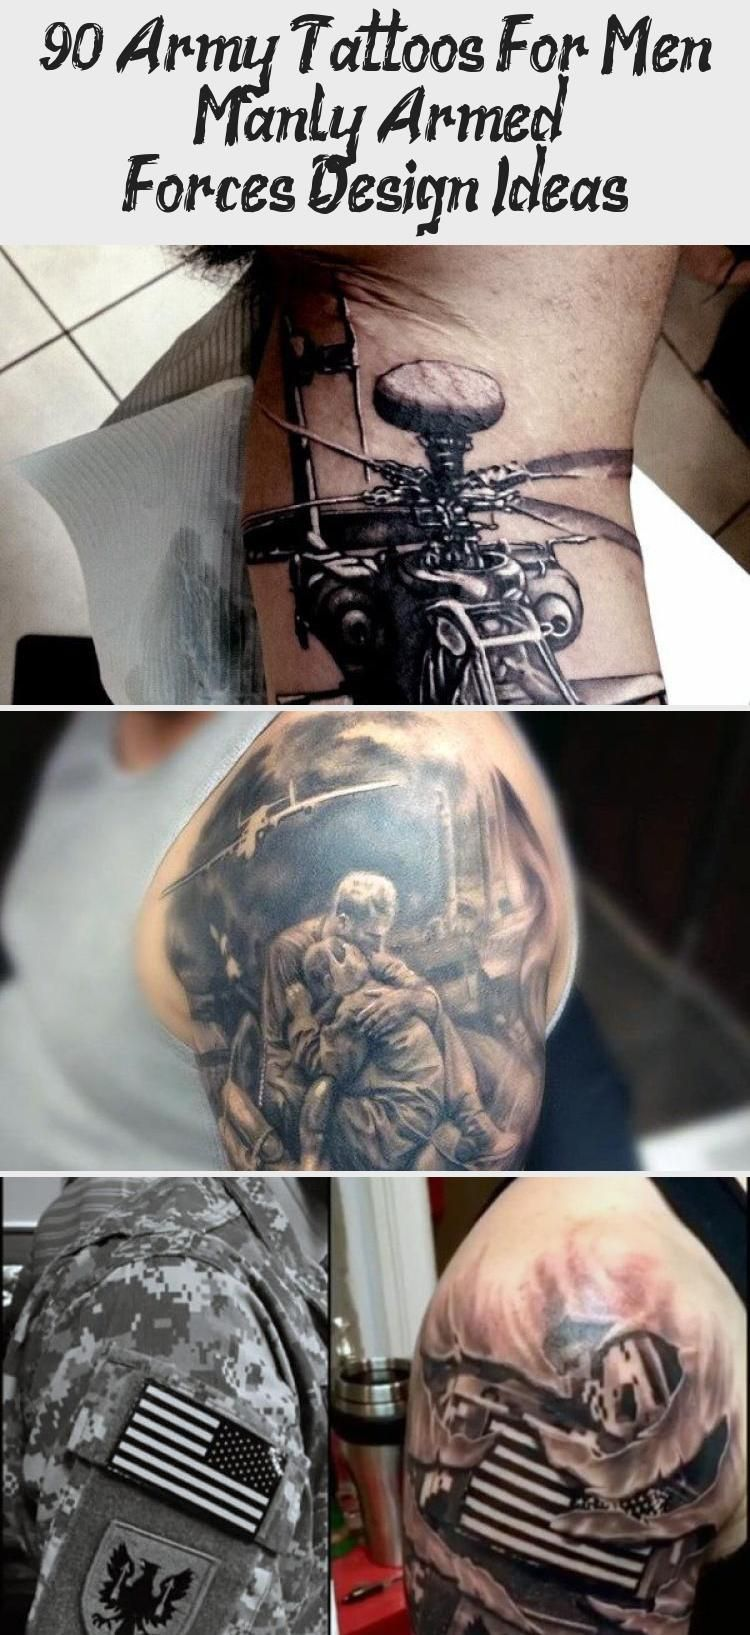 90 Army Tattoos For Men – Manly Armed Forces Design Ideas ...